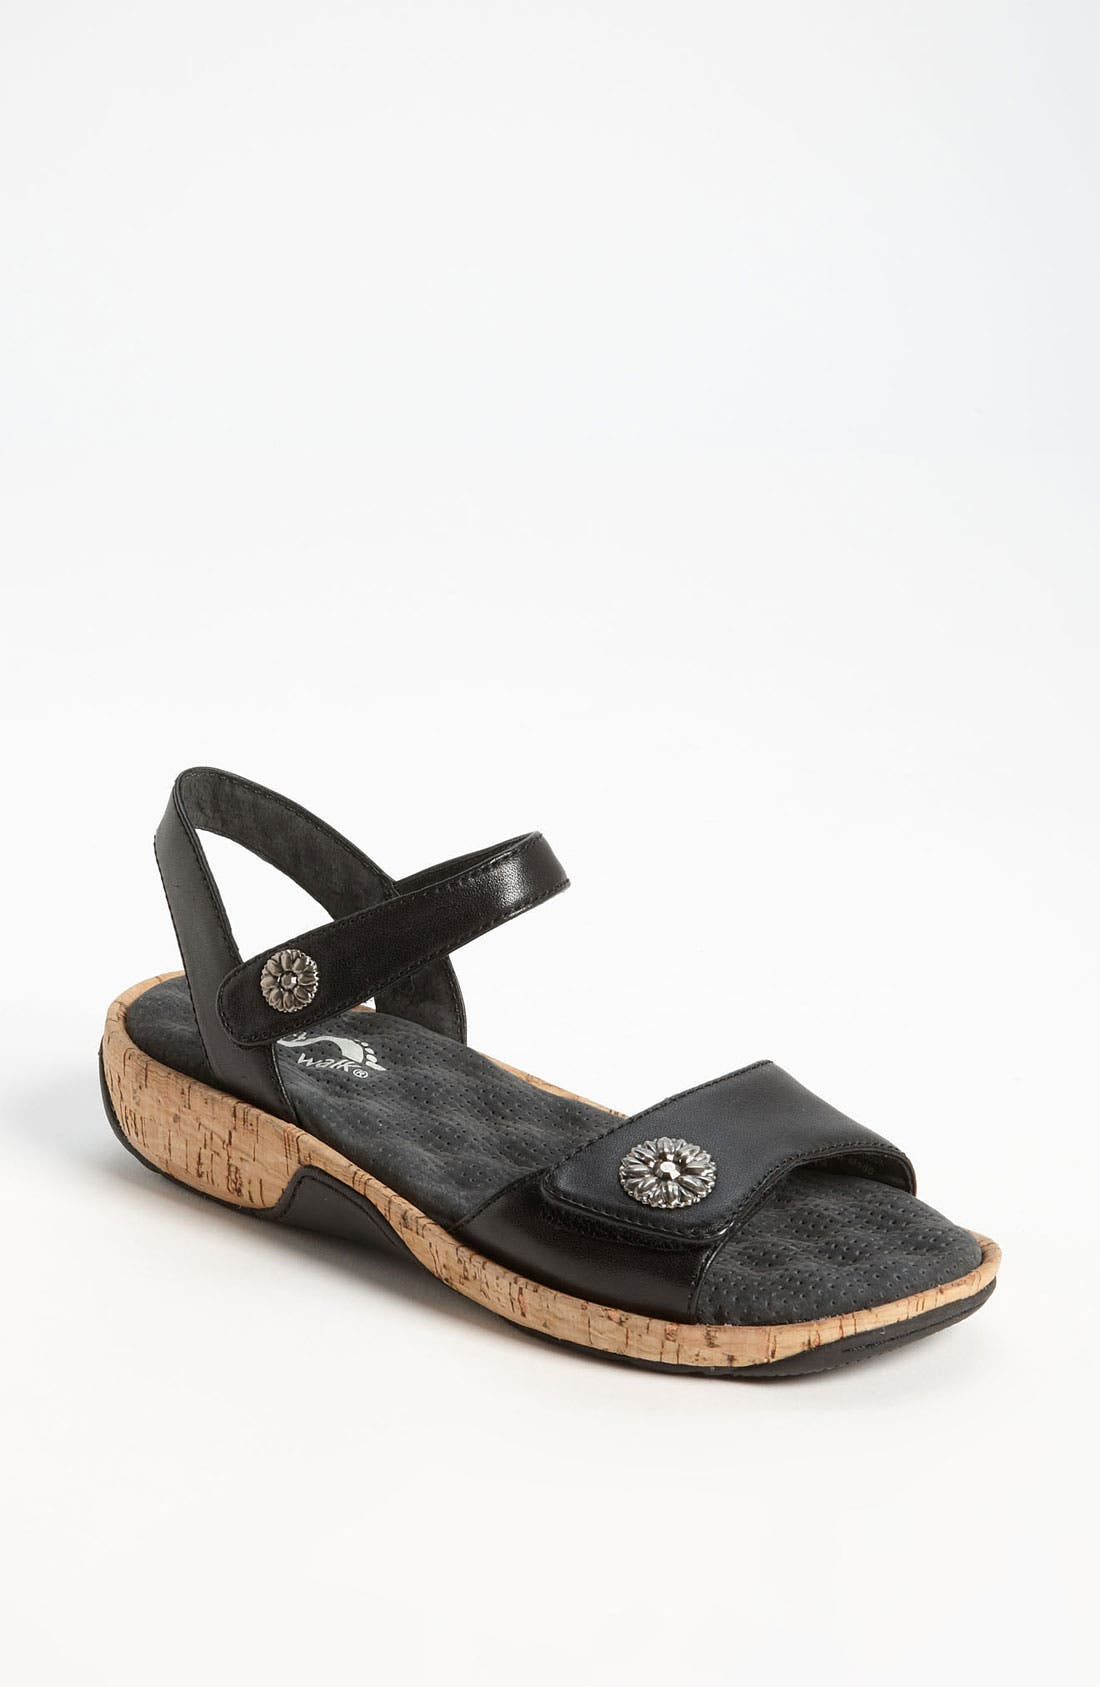 Alternate Image 1 Selected - SoftWalk® 'Bandito' Sandal